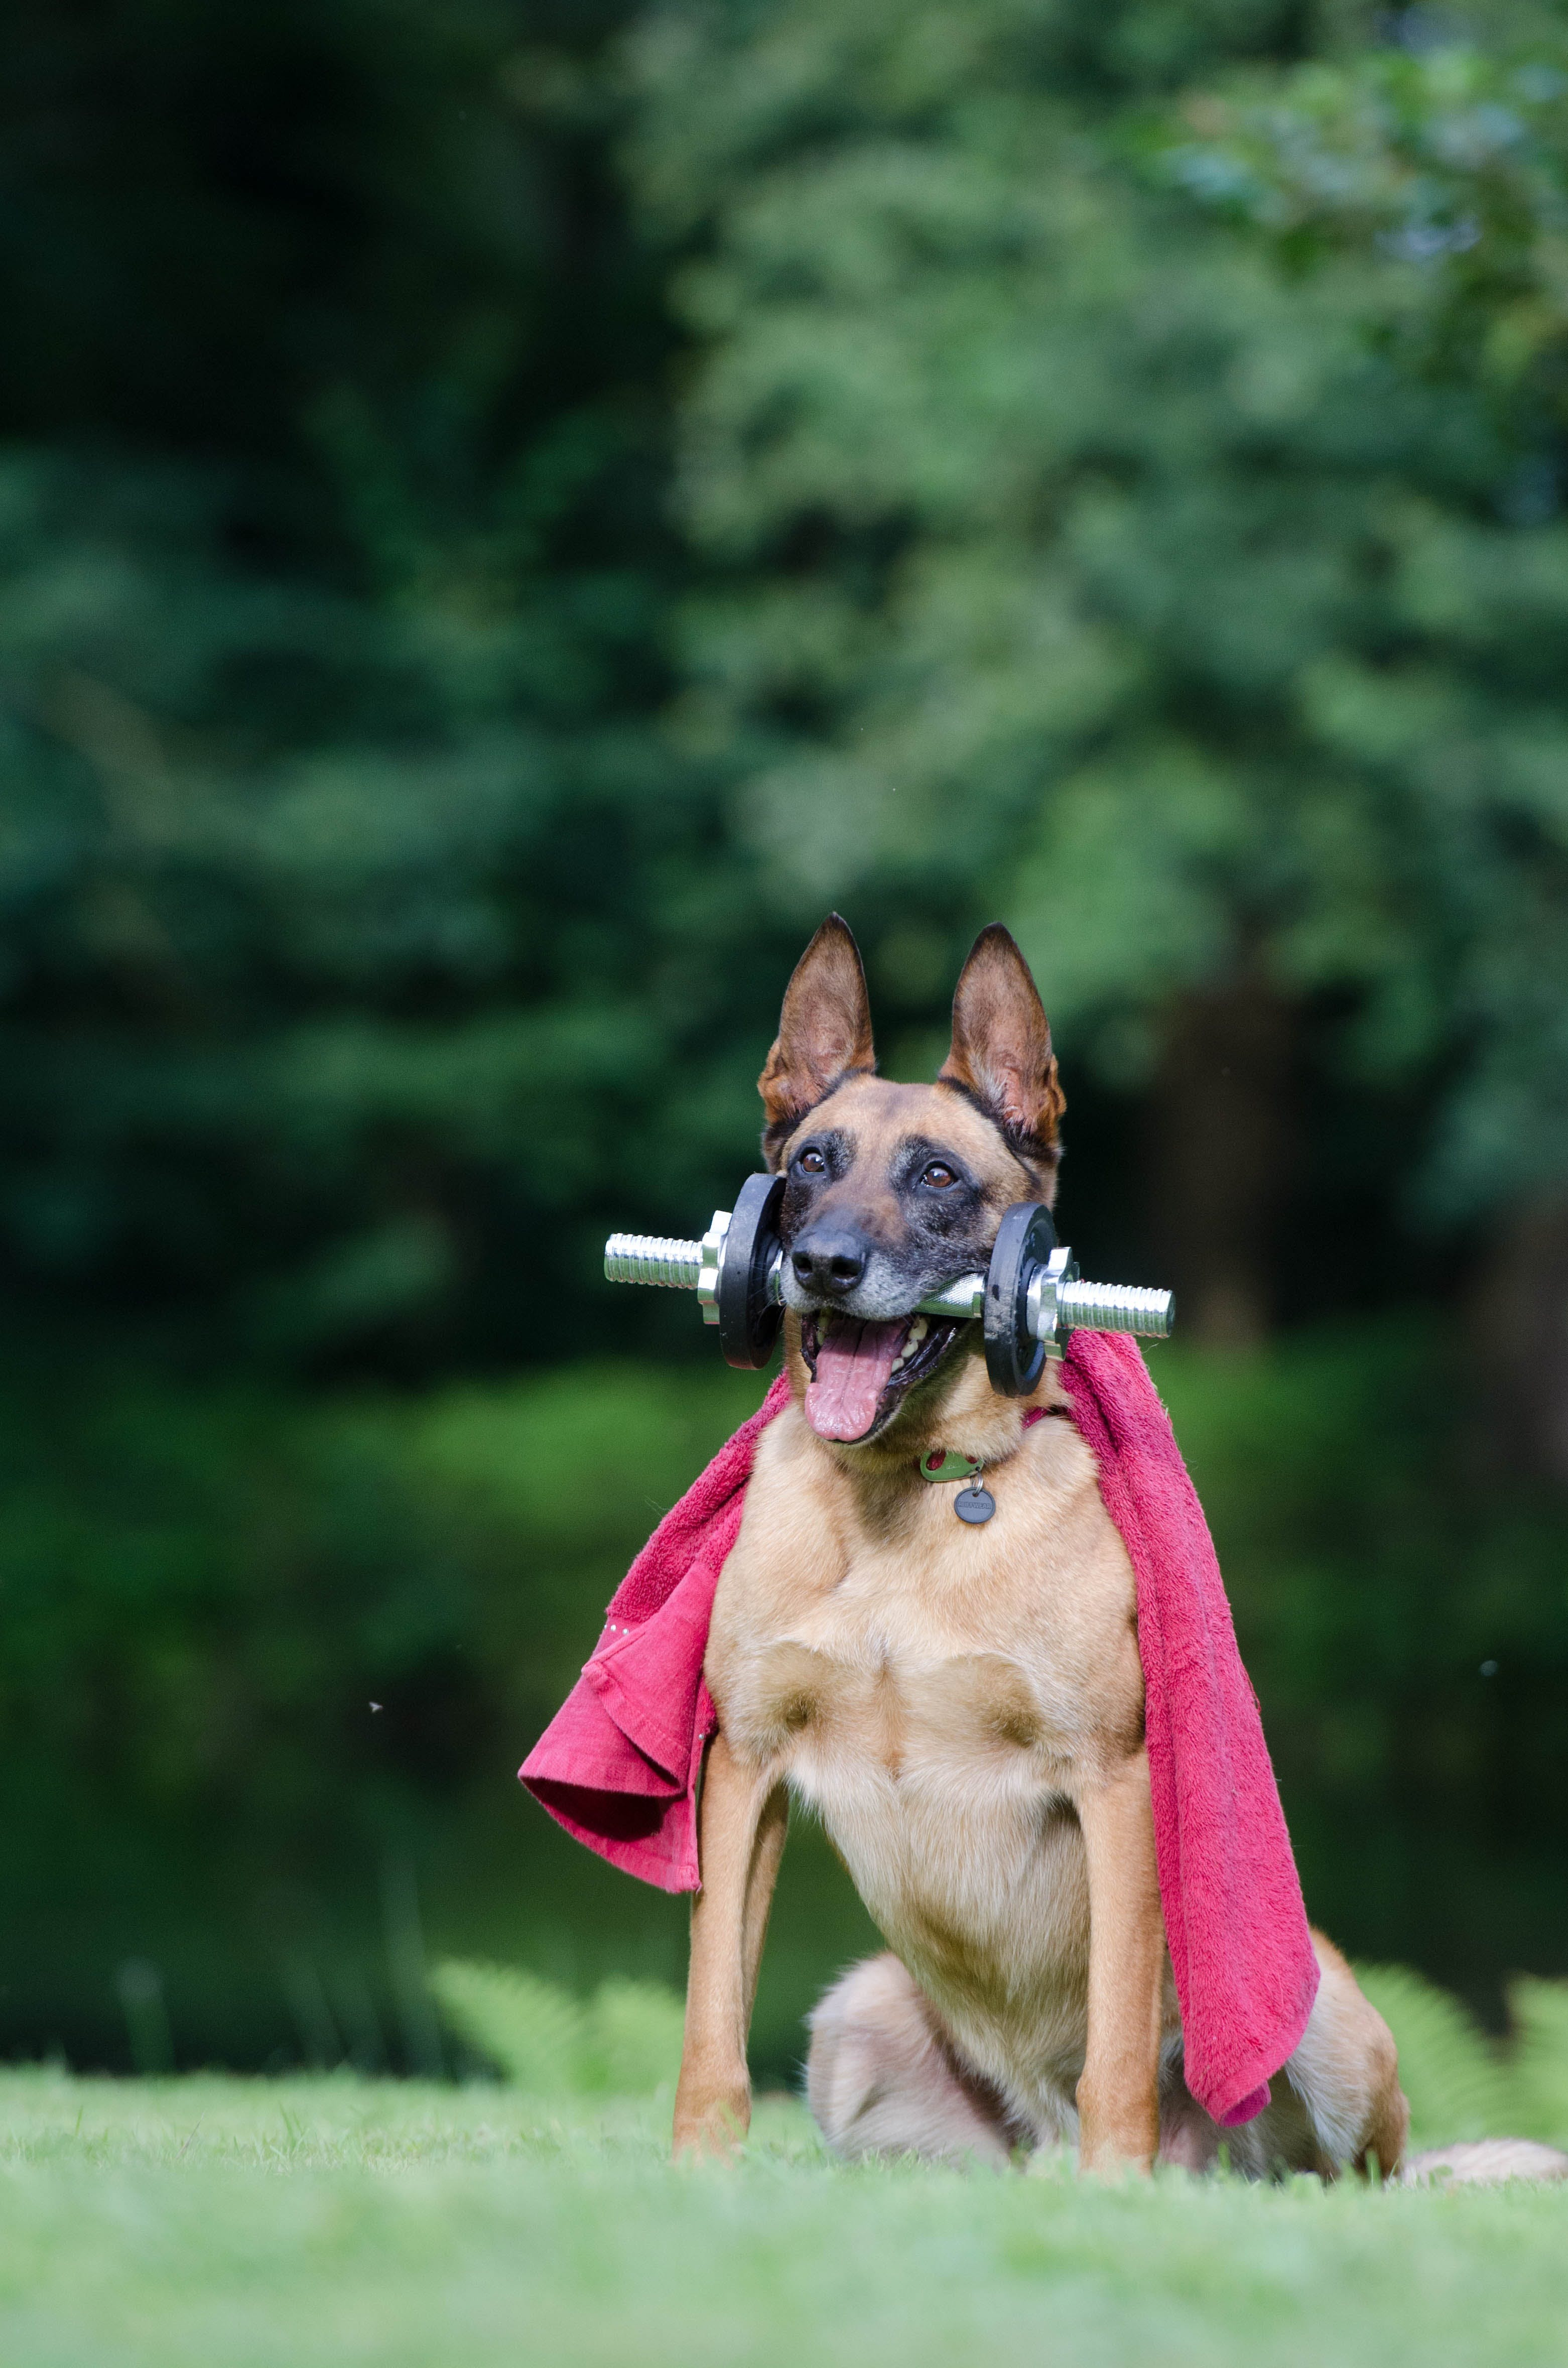 Adult Tan German Shepherd Biting Dumbbell While Sitting on Lawn Grass Selective Focus Photography